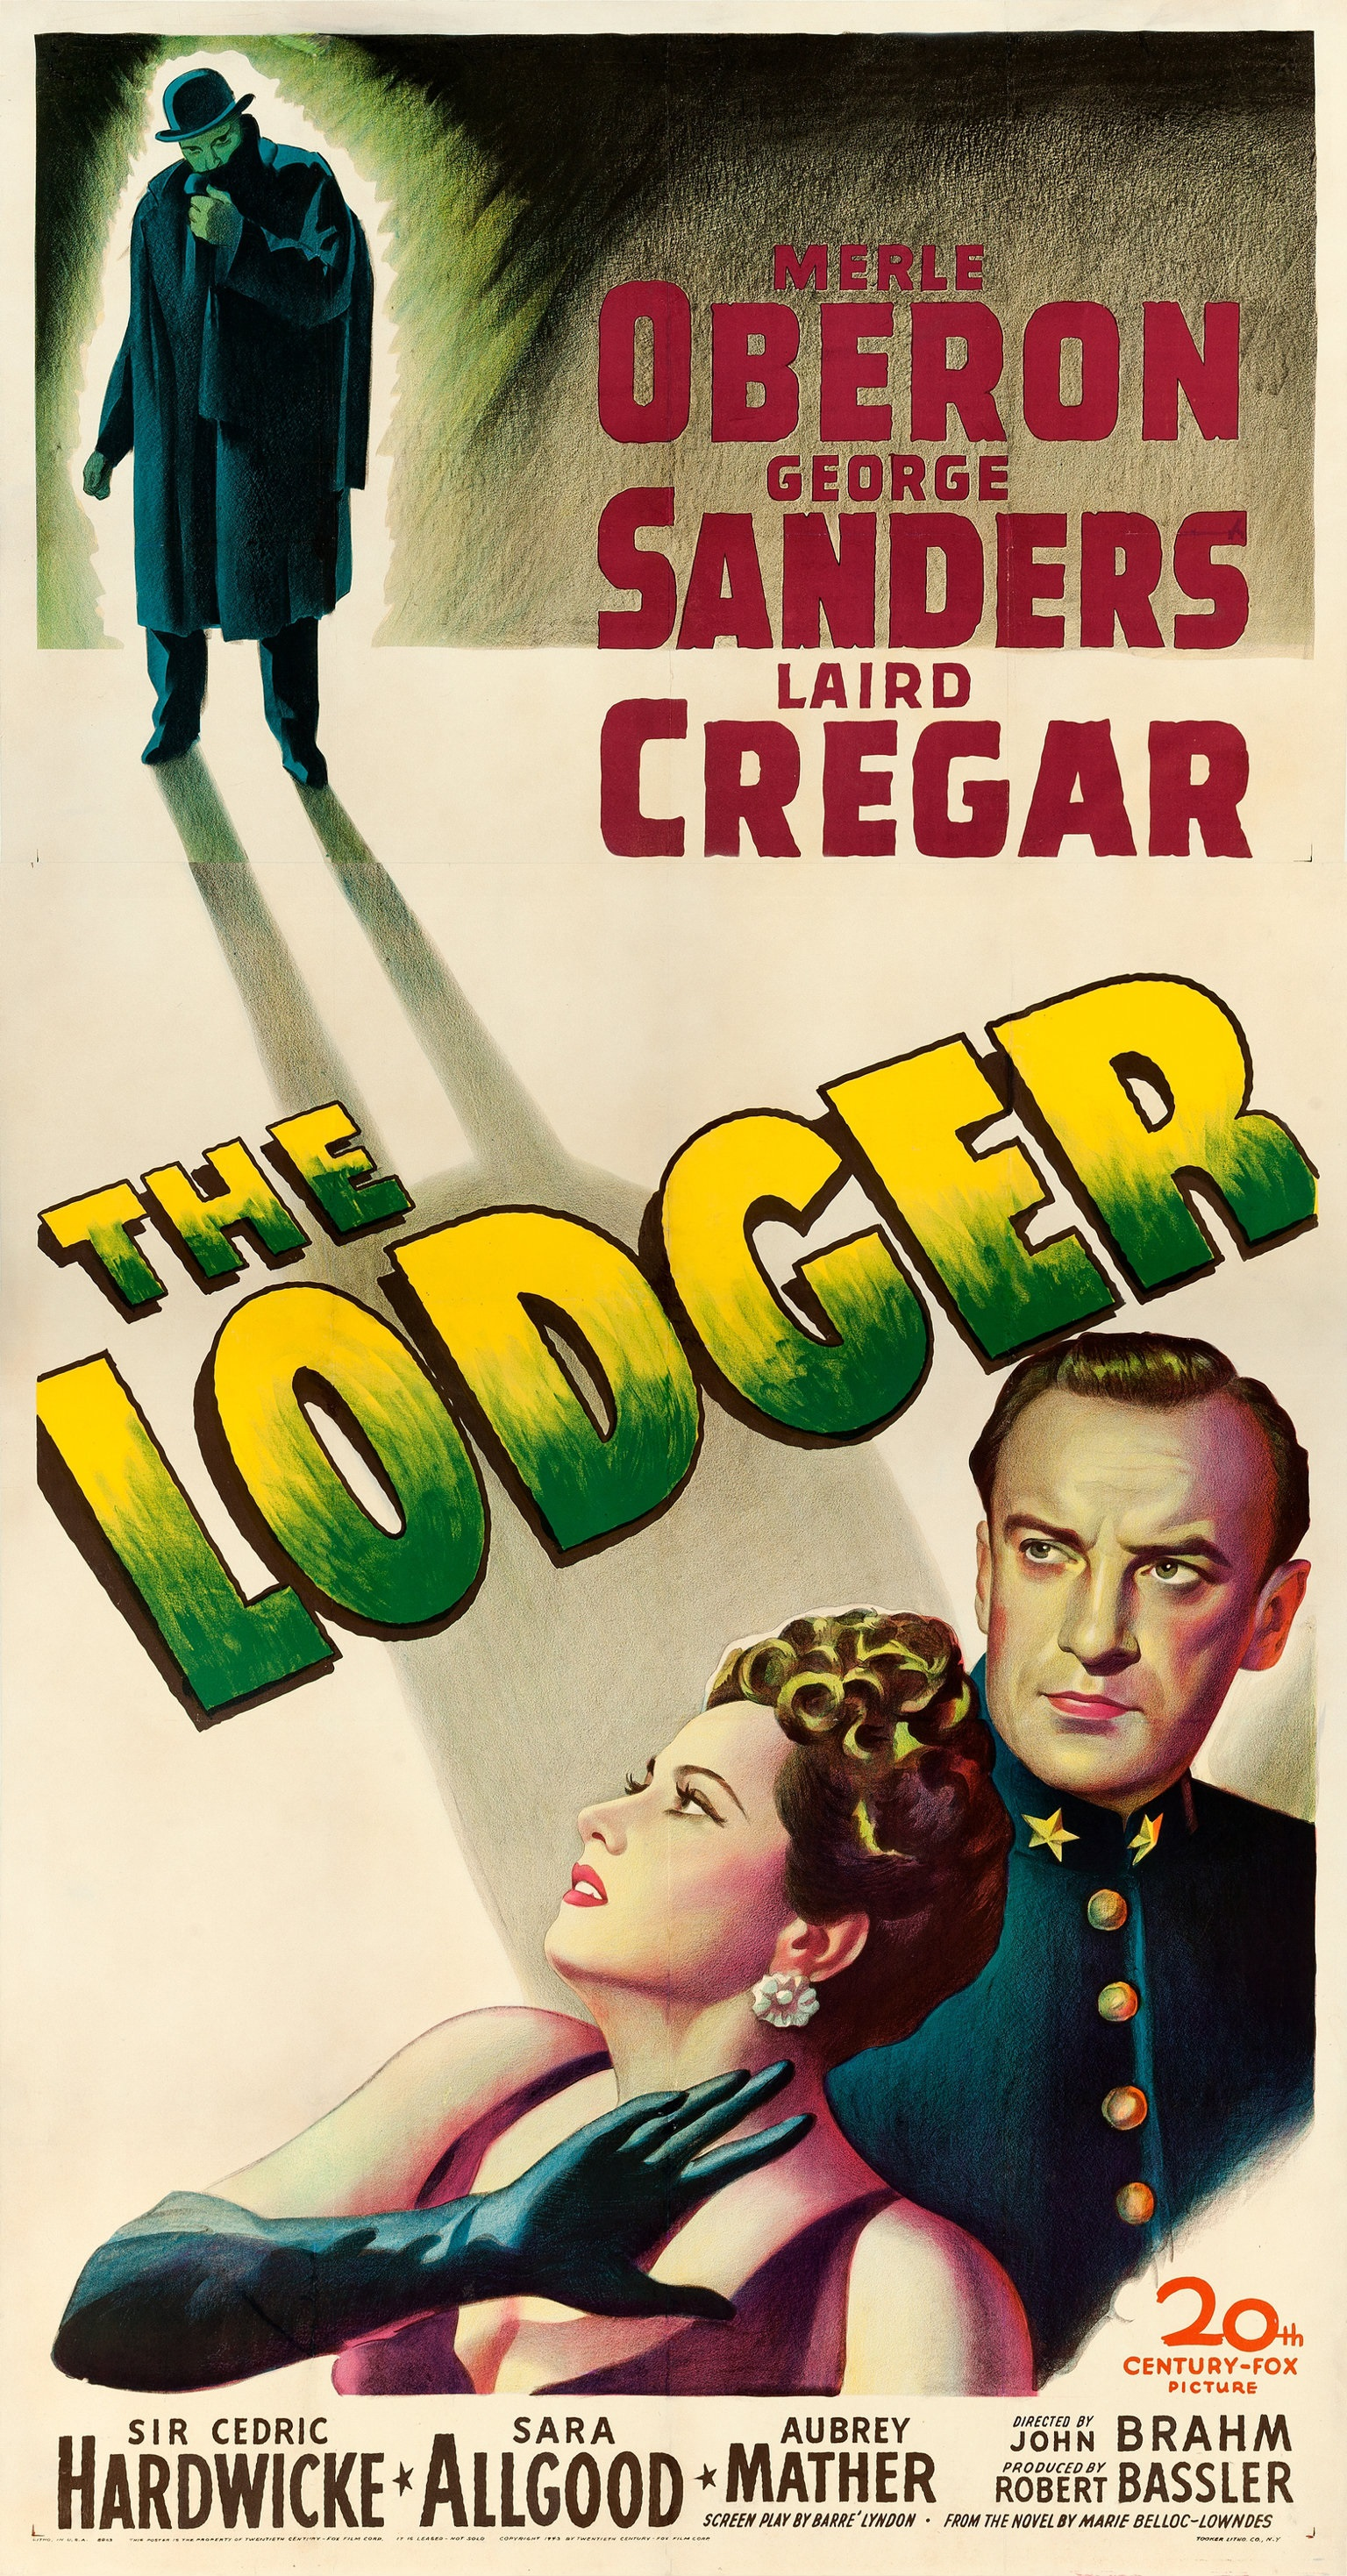 The Lodger (1944) US three sheet poster